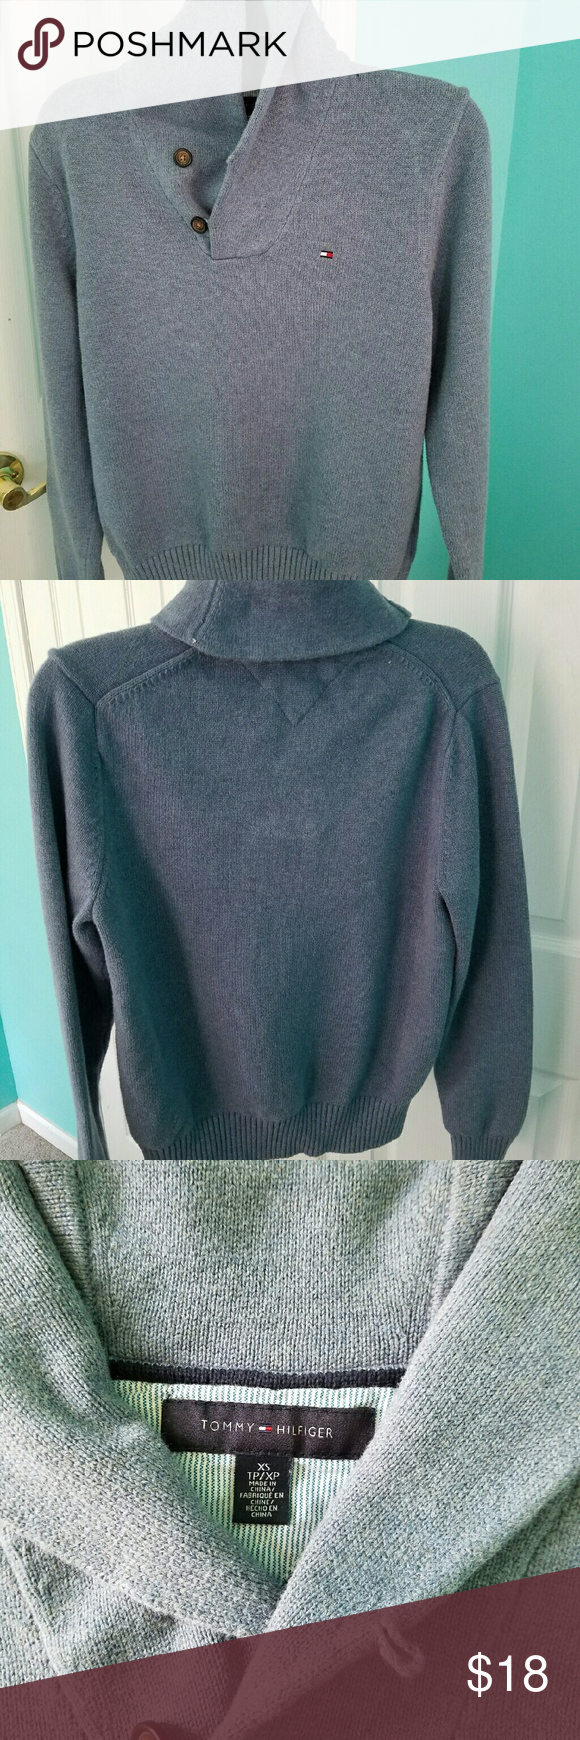 "Tommy Hilfiger Sweater Shawl Collar , Pullover, XS, 100% Cotton, Length 23"", Under arms 19"" Tommy Hilfiger Sweaters"